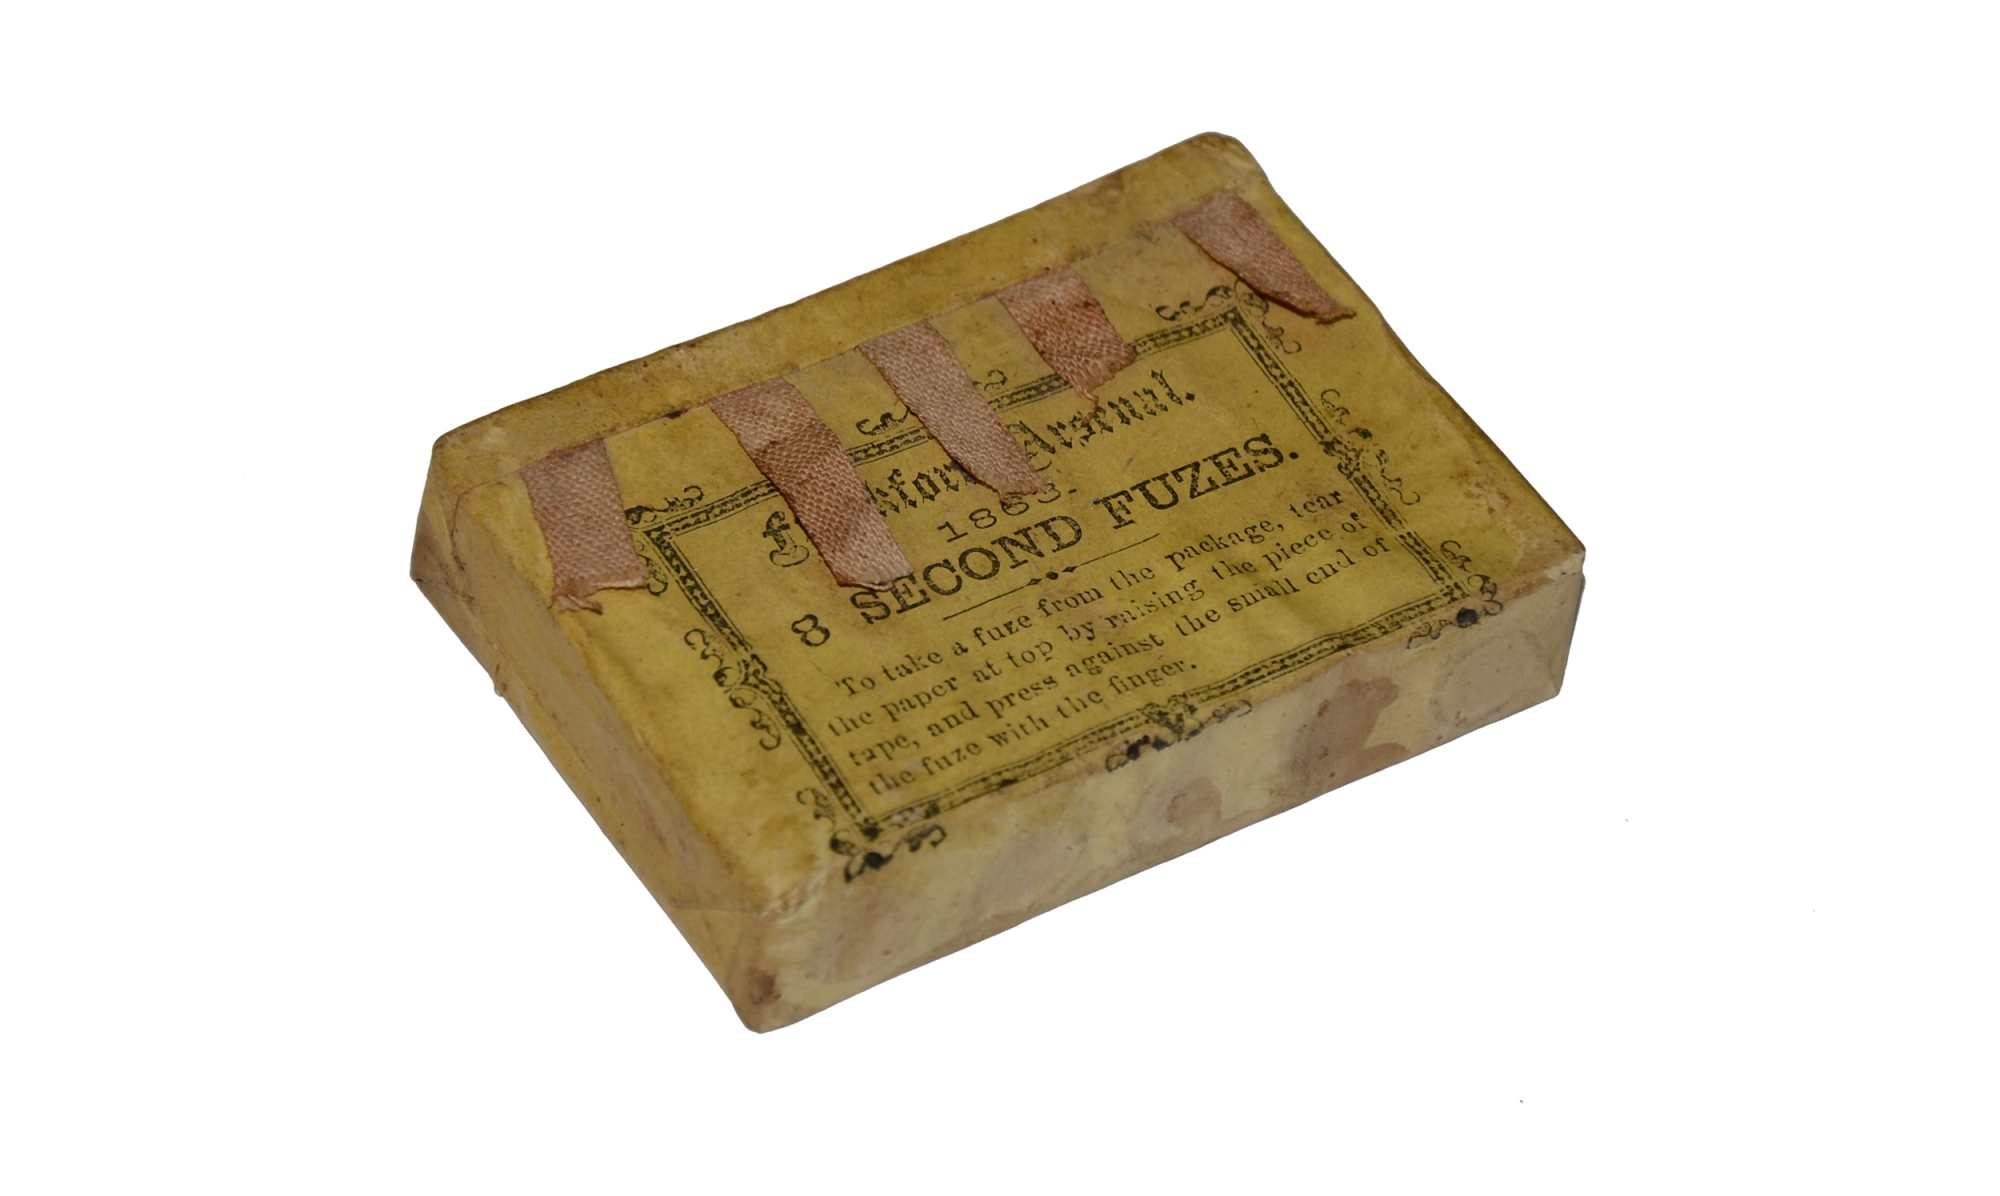 PACK OF 1863 FRANKFORD ARSENAL ARTILLERY FUSES